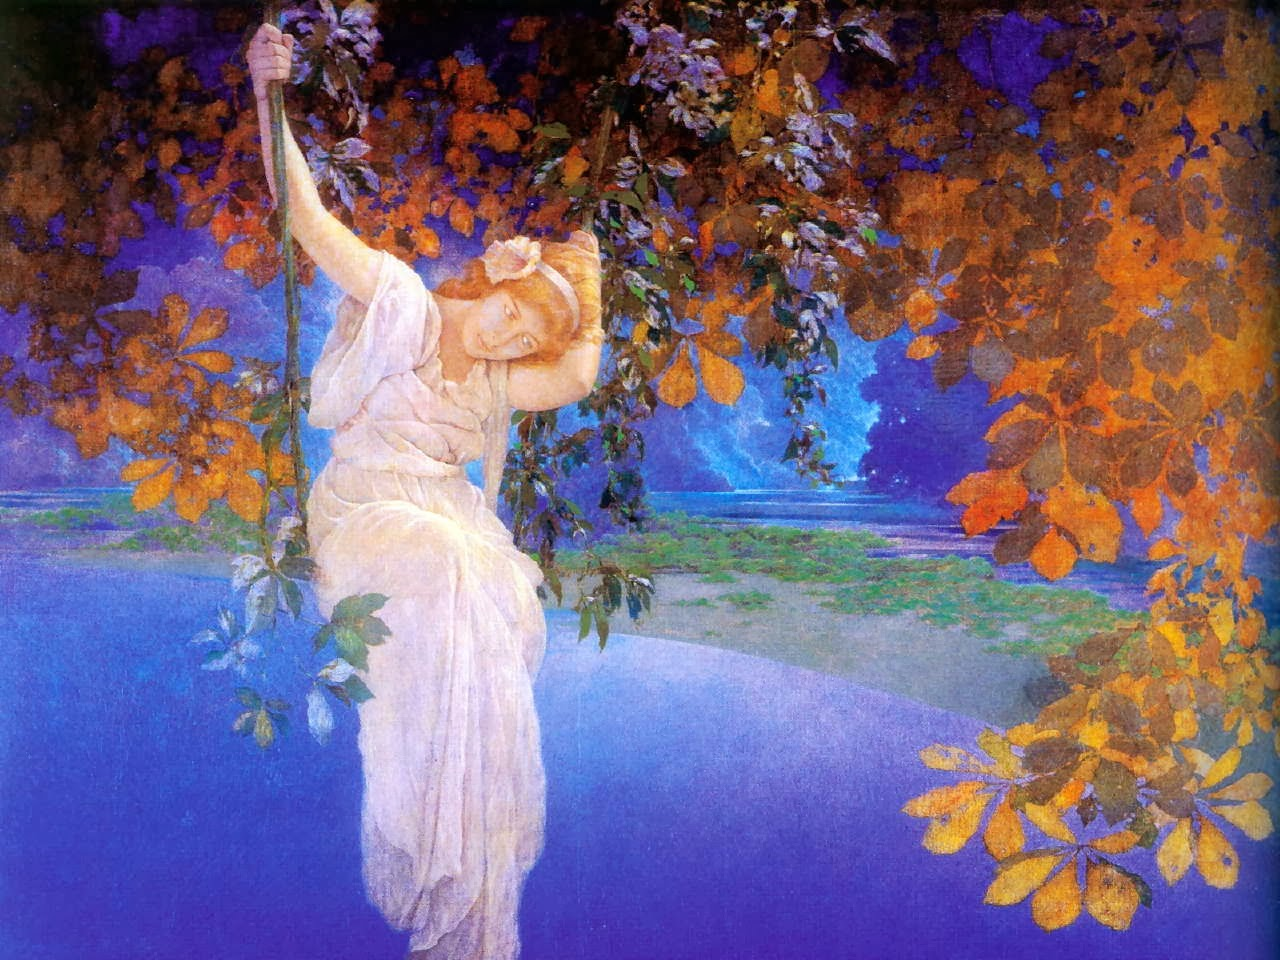 Split complementary illustration unit maxfield parrish for Making prints of paintings